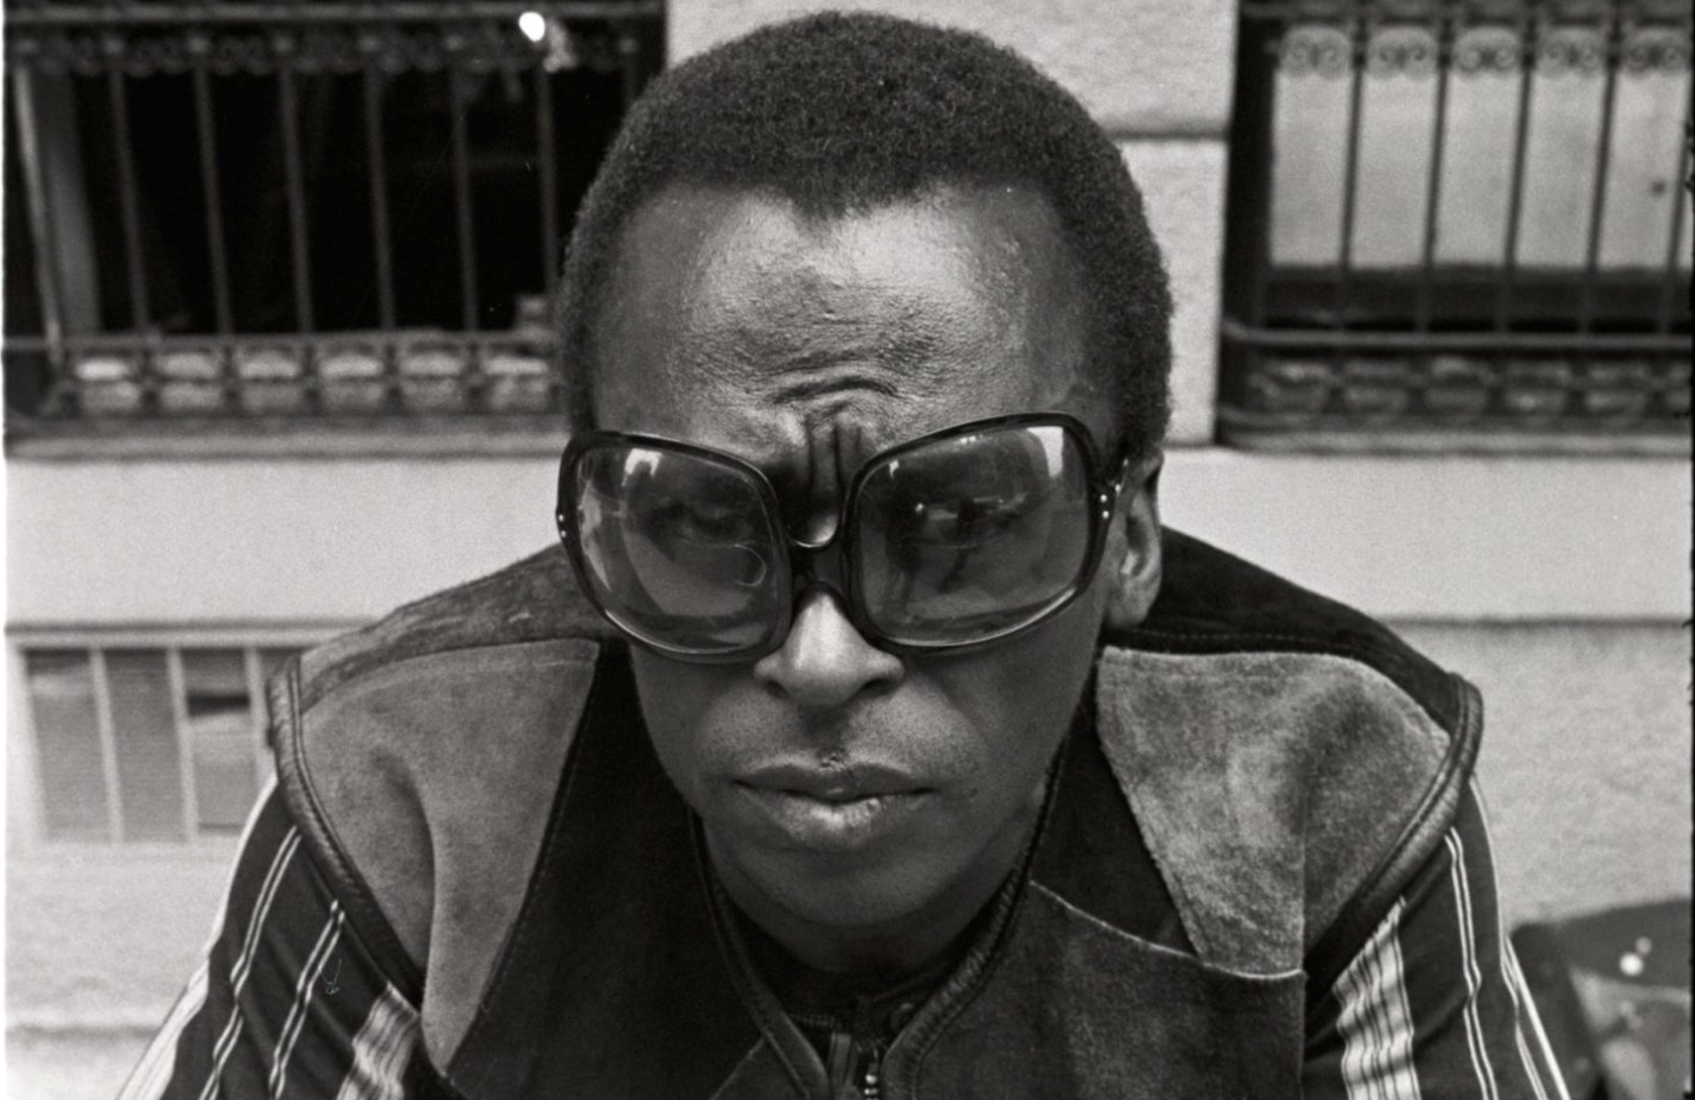 An undated portrait of Miles Davis from the PBS film on his life.